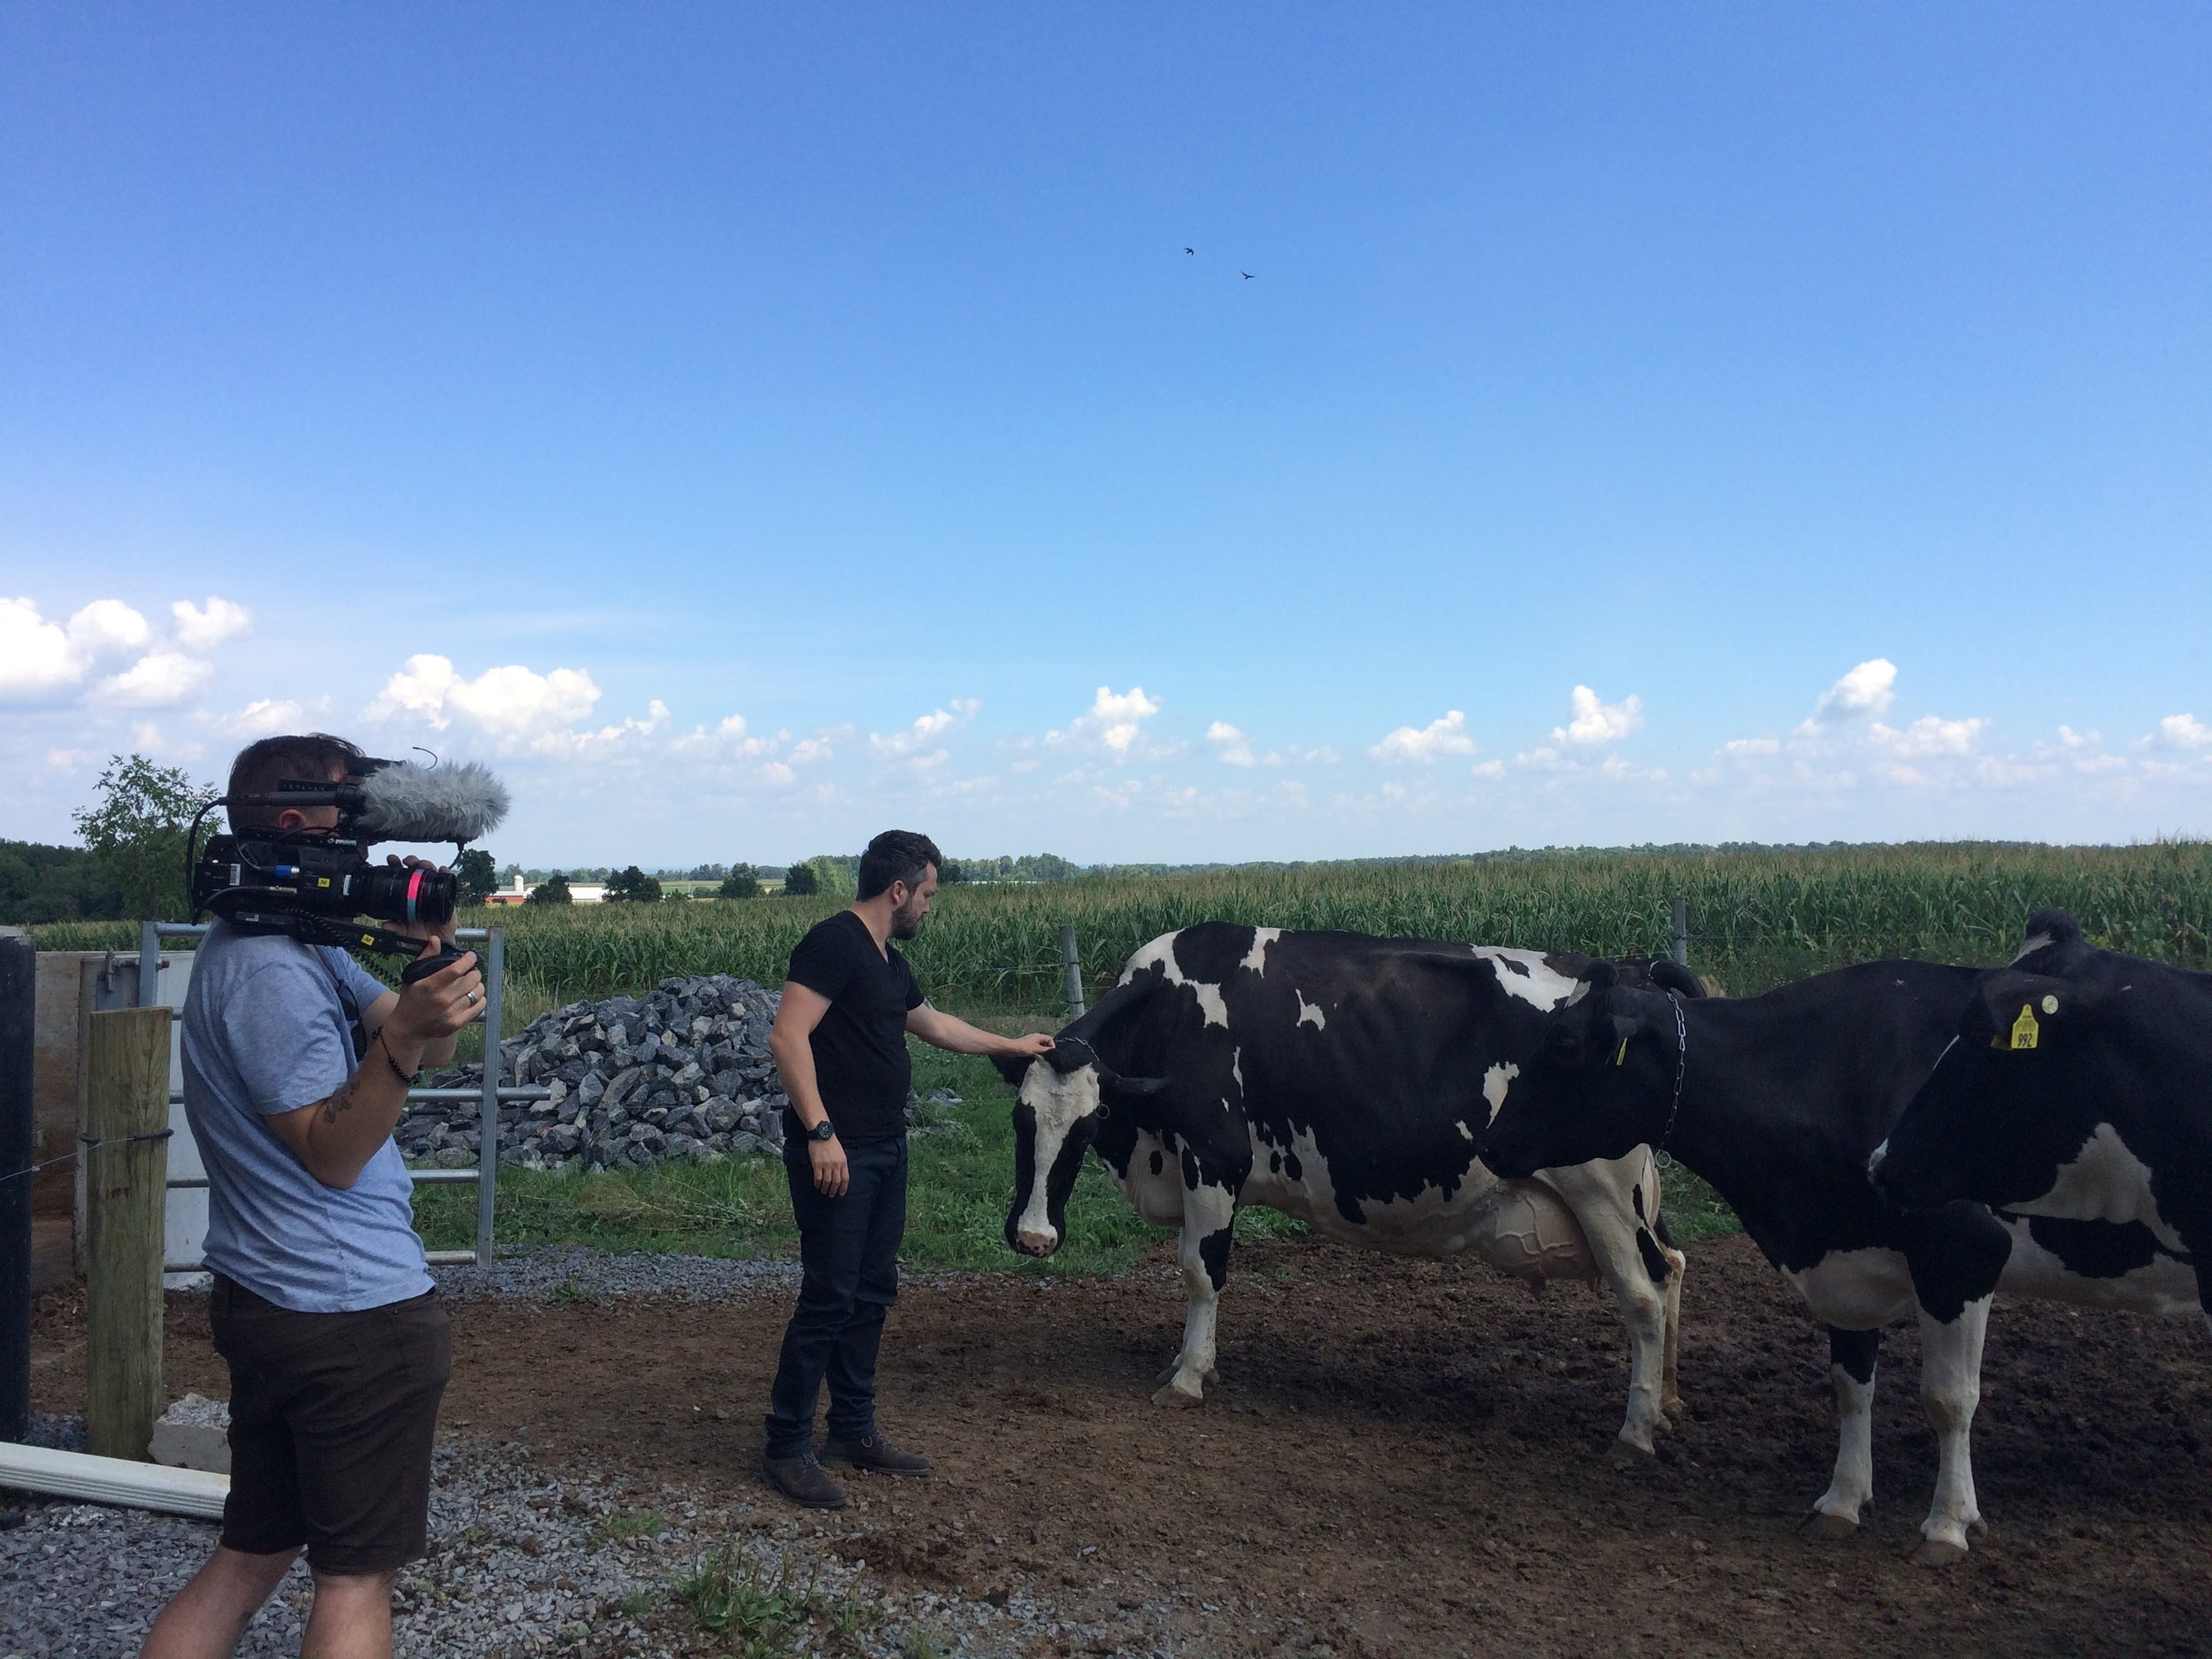 Fabio Viviani petting dairy cows. Most people don't know that Fabio grew up on food stamps in Italy. He came to America in 2005 with no money, and is now one of the most successful celebrity chefs in America. I am proud to call him a friend and client.